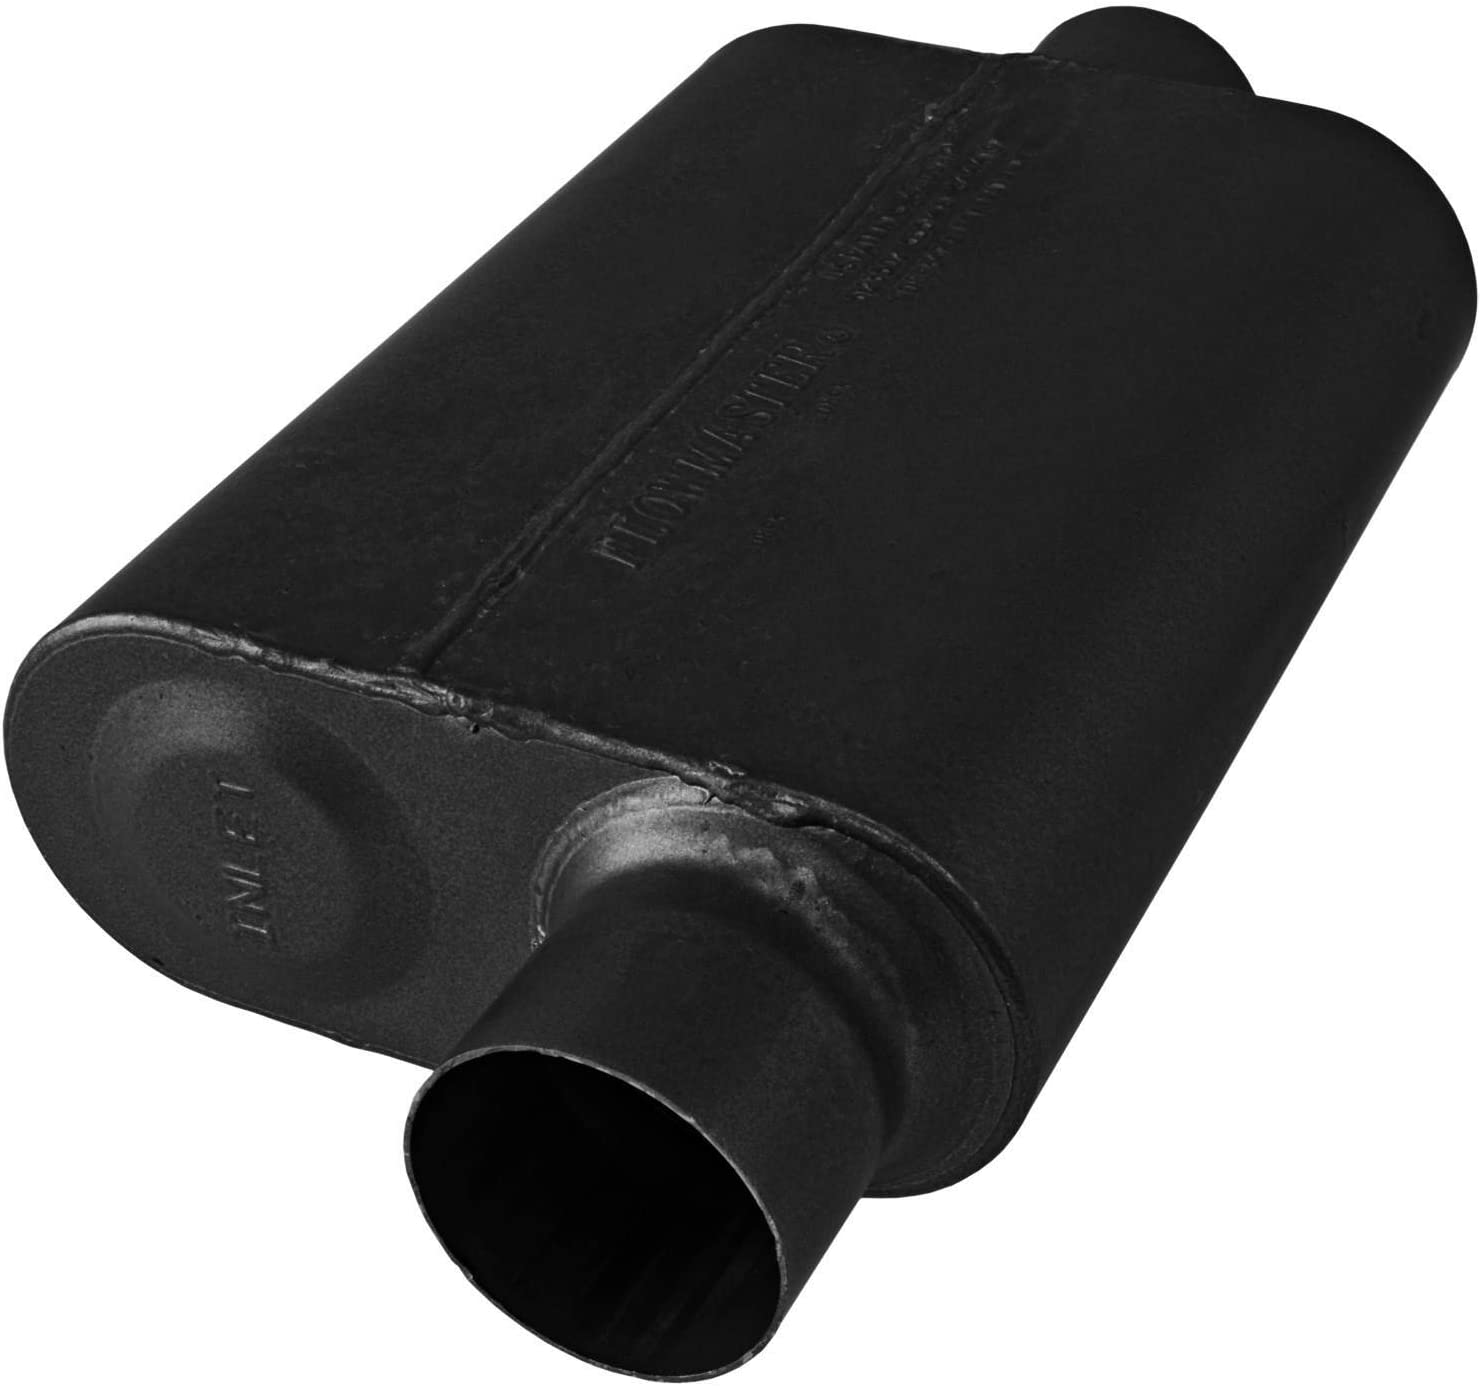 Flowmaster 8043041 40 Series Muffler 409S Aggressive Sound 3.00 Center OUT 3.00 Offset IN